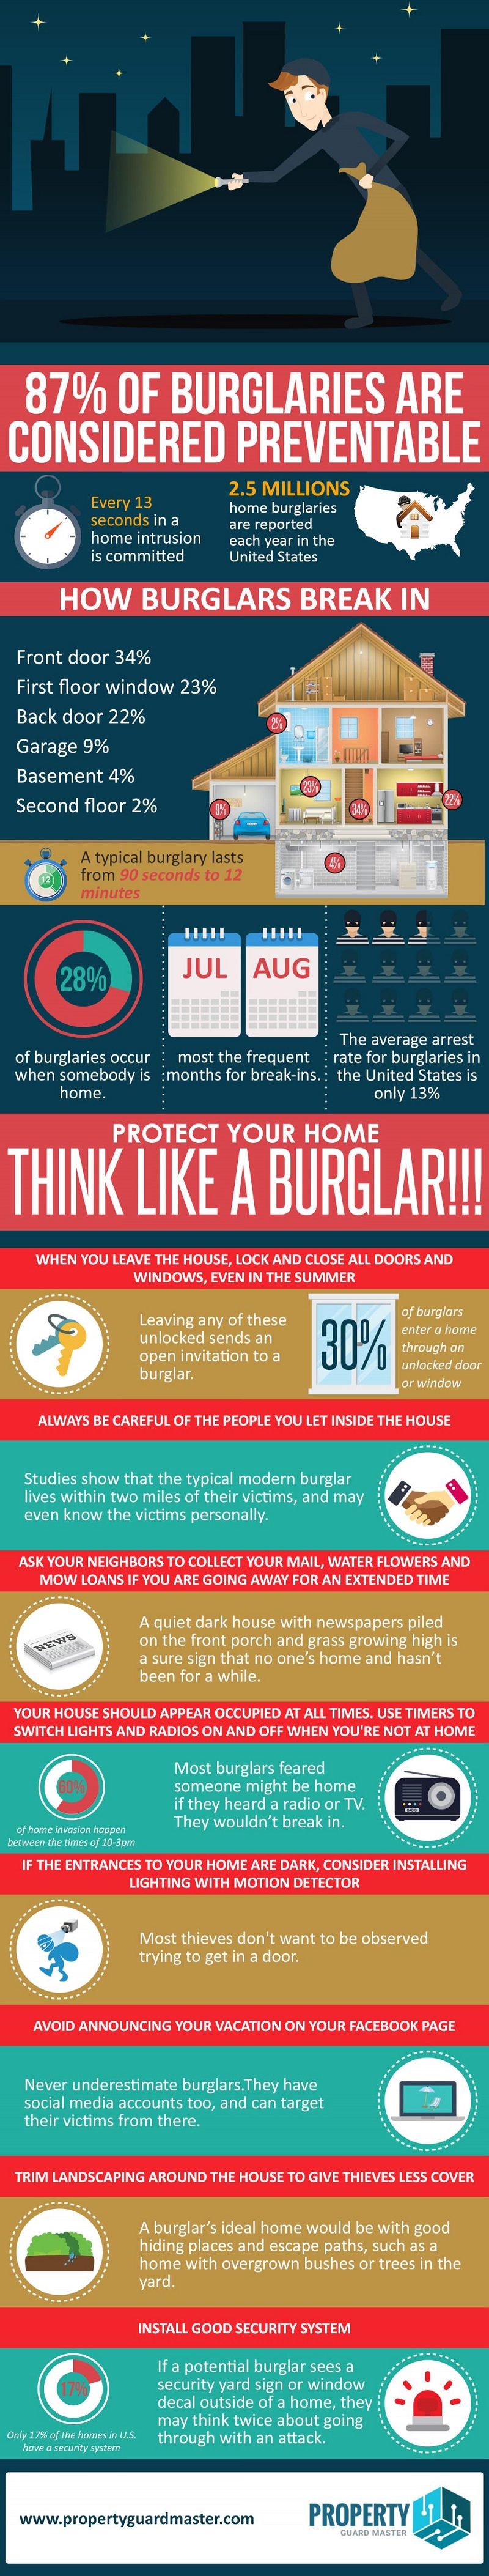 10 Signs Your House is Being Targeted by Burglars